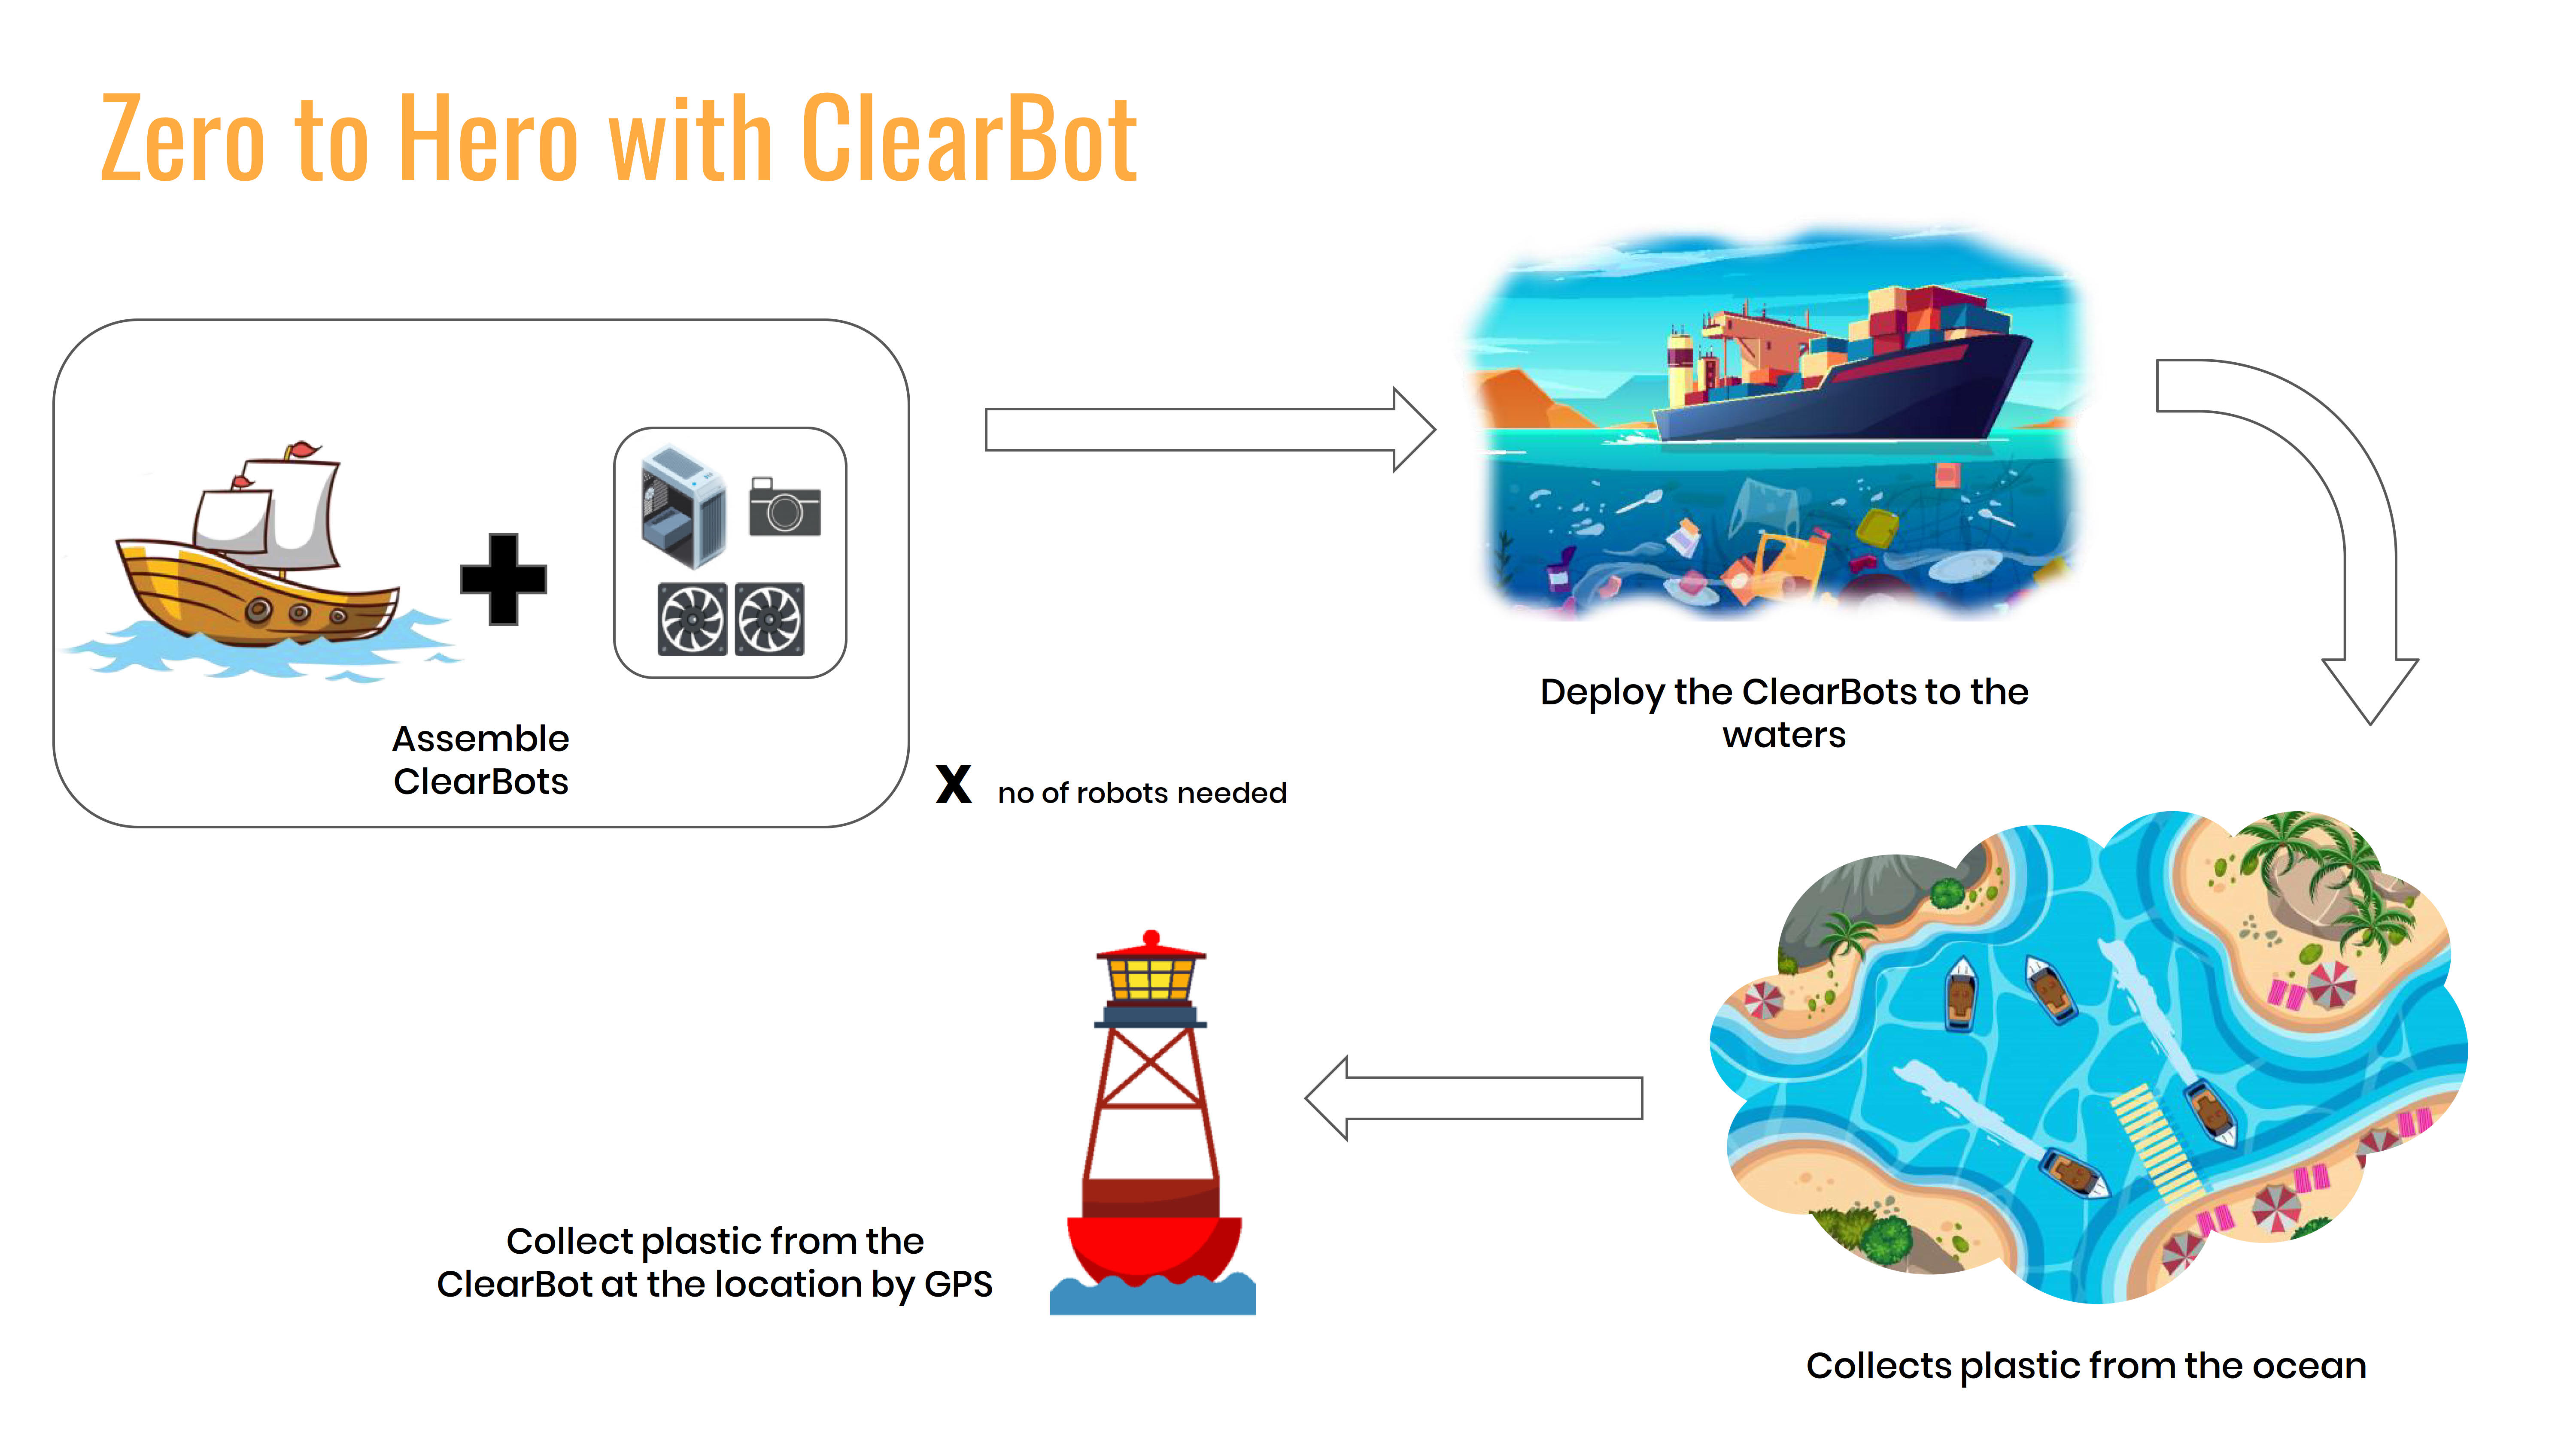 Another challenge we've learned in Bali was that just one robot alone is not going to have the range and capacity needed to make a tangible dent in cleaning up even a small beach.    That's why ClearBot will rely on a system approach where a swarm of simple robots that collect trash until they reach their capacity of run out of battery. At that point, the robot goes into hibernation and sends out beacons of its location so a team of volunteer can collect the robots AND the trash back to shore for sorting.